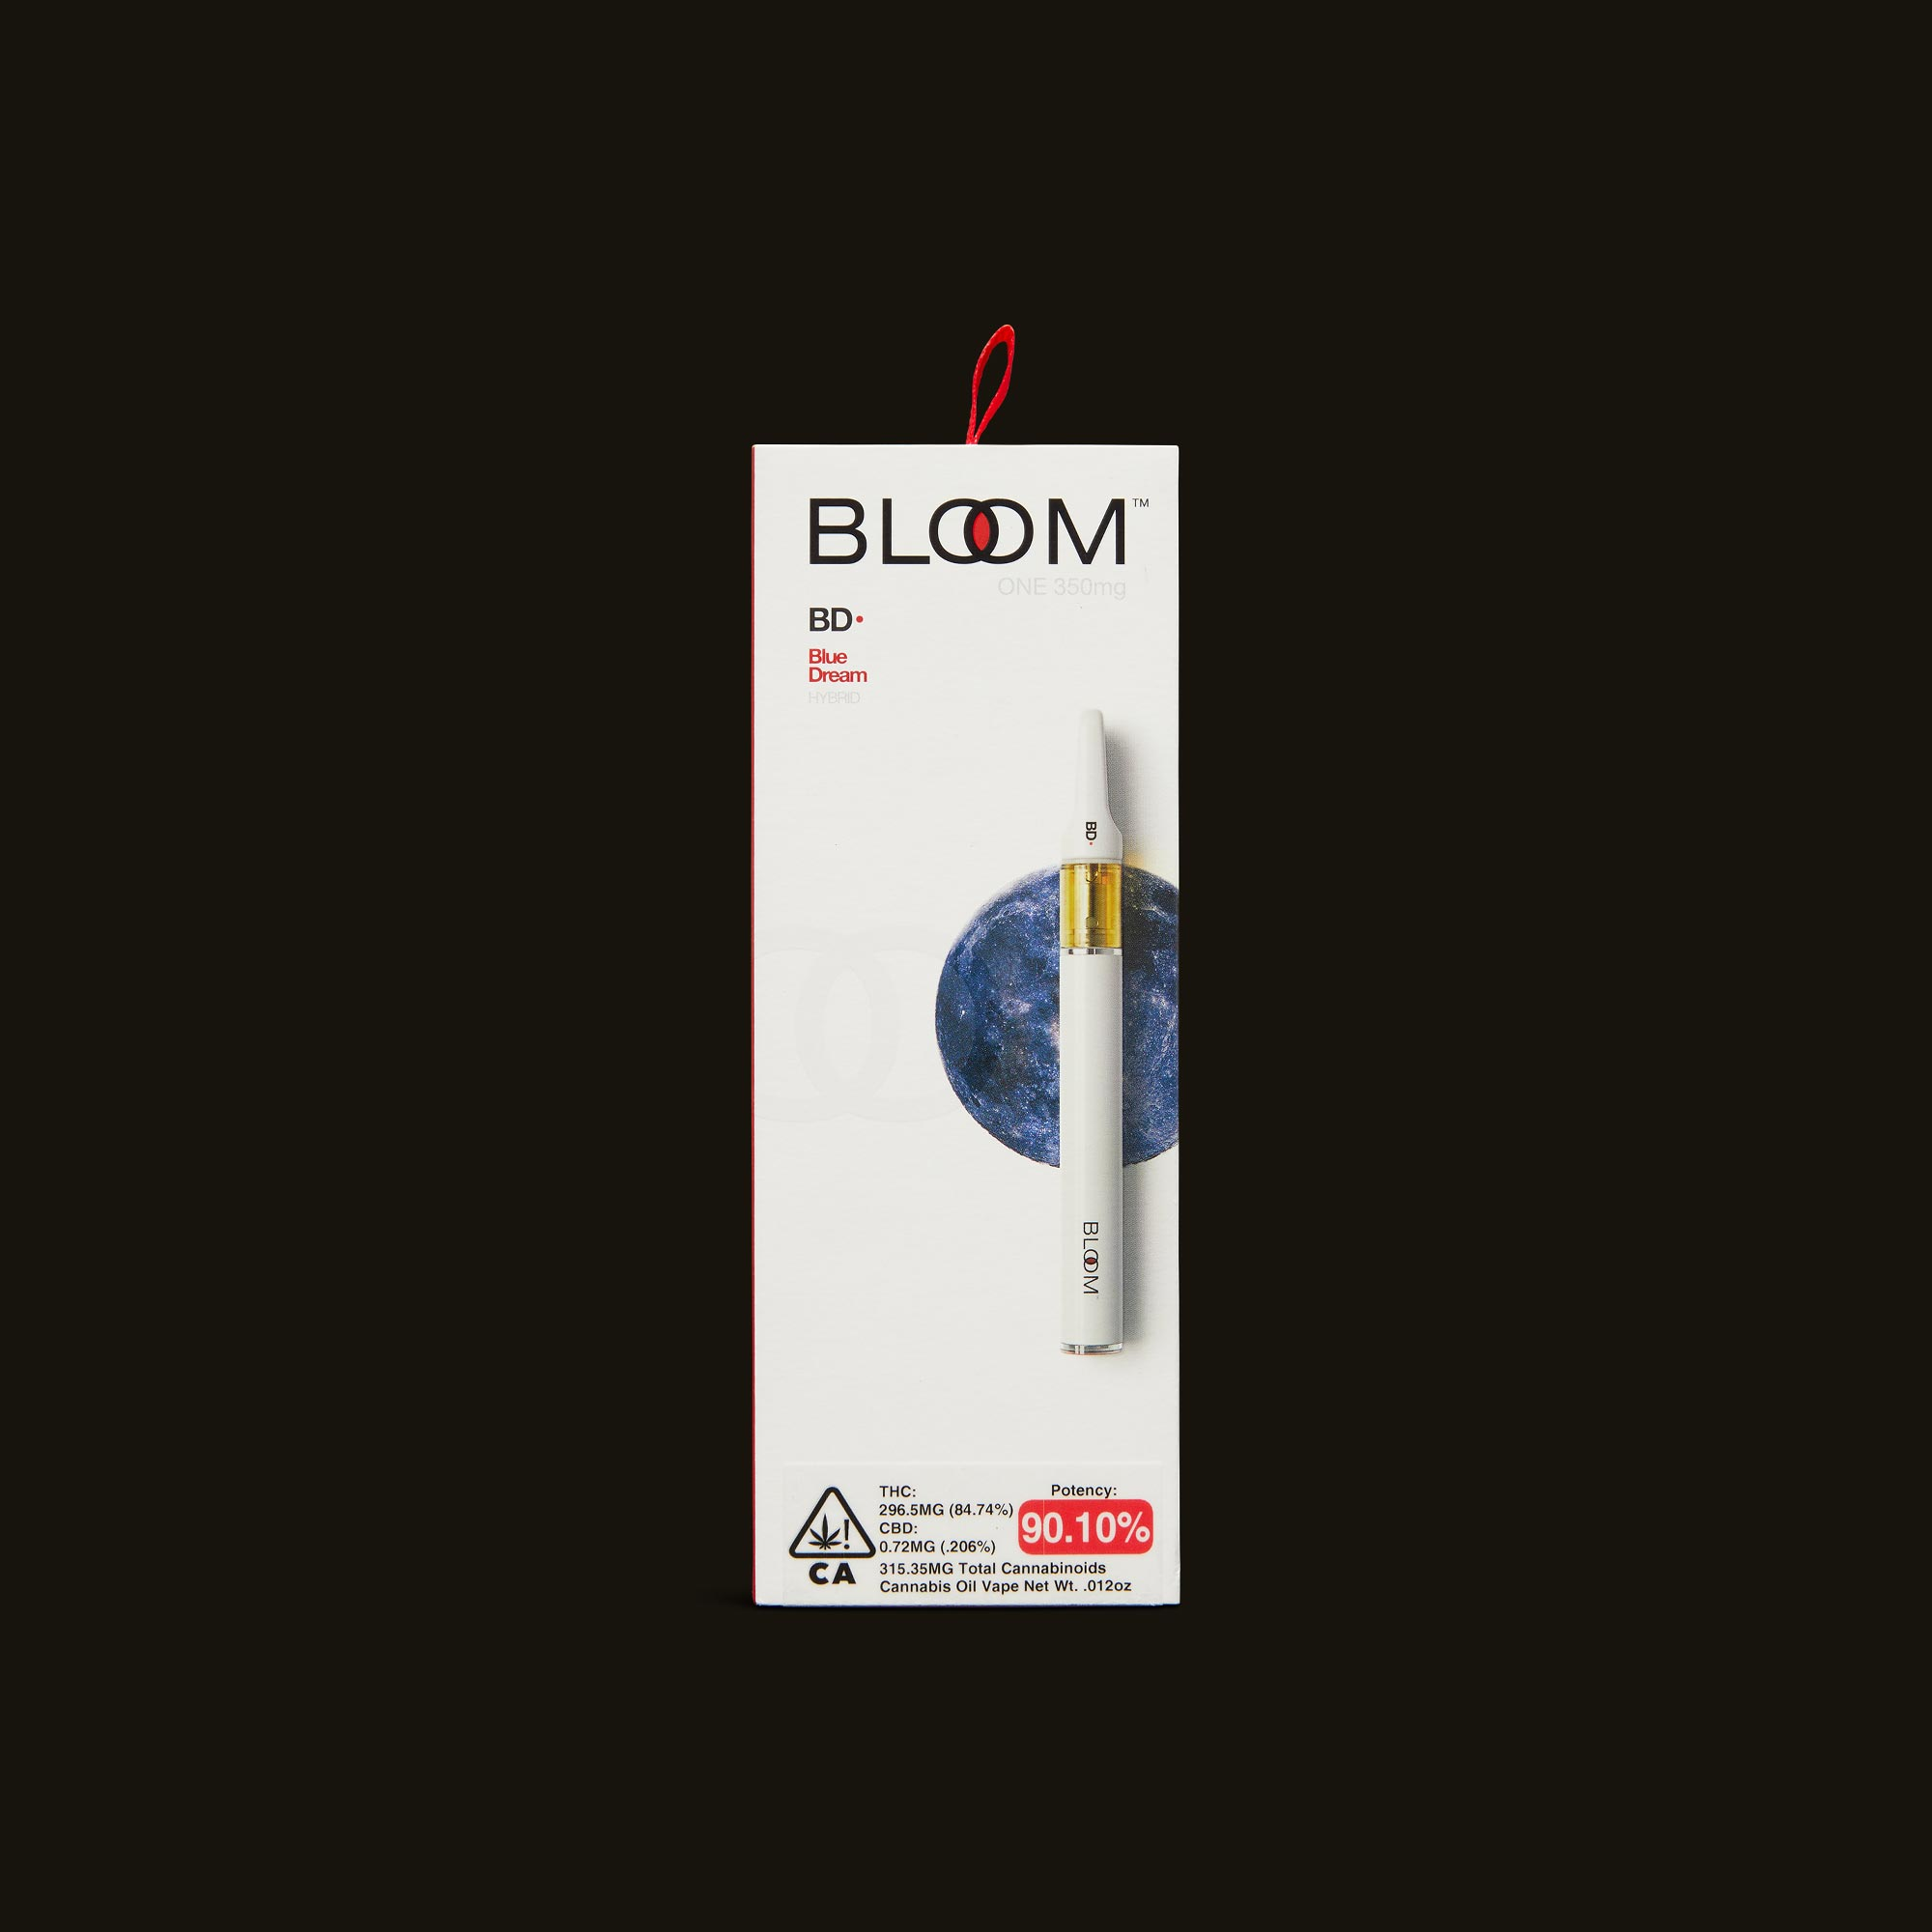 Blue Dream Bloom One - 350mg disposable pen